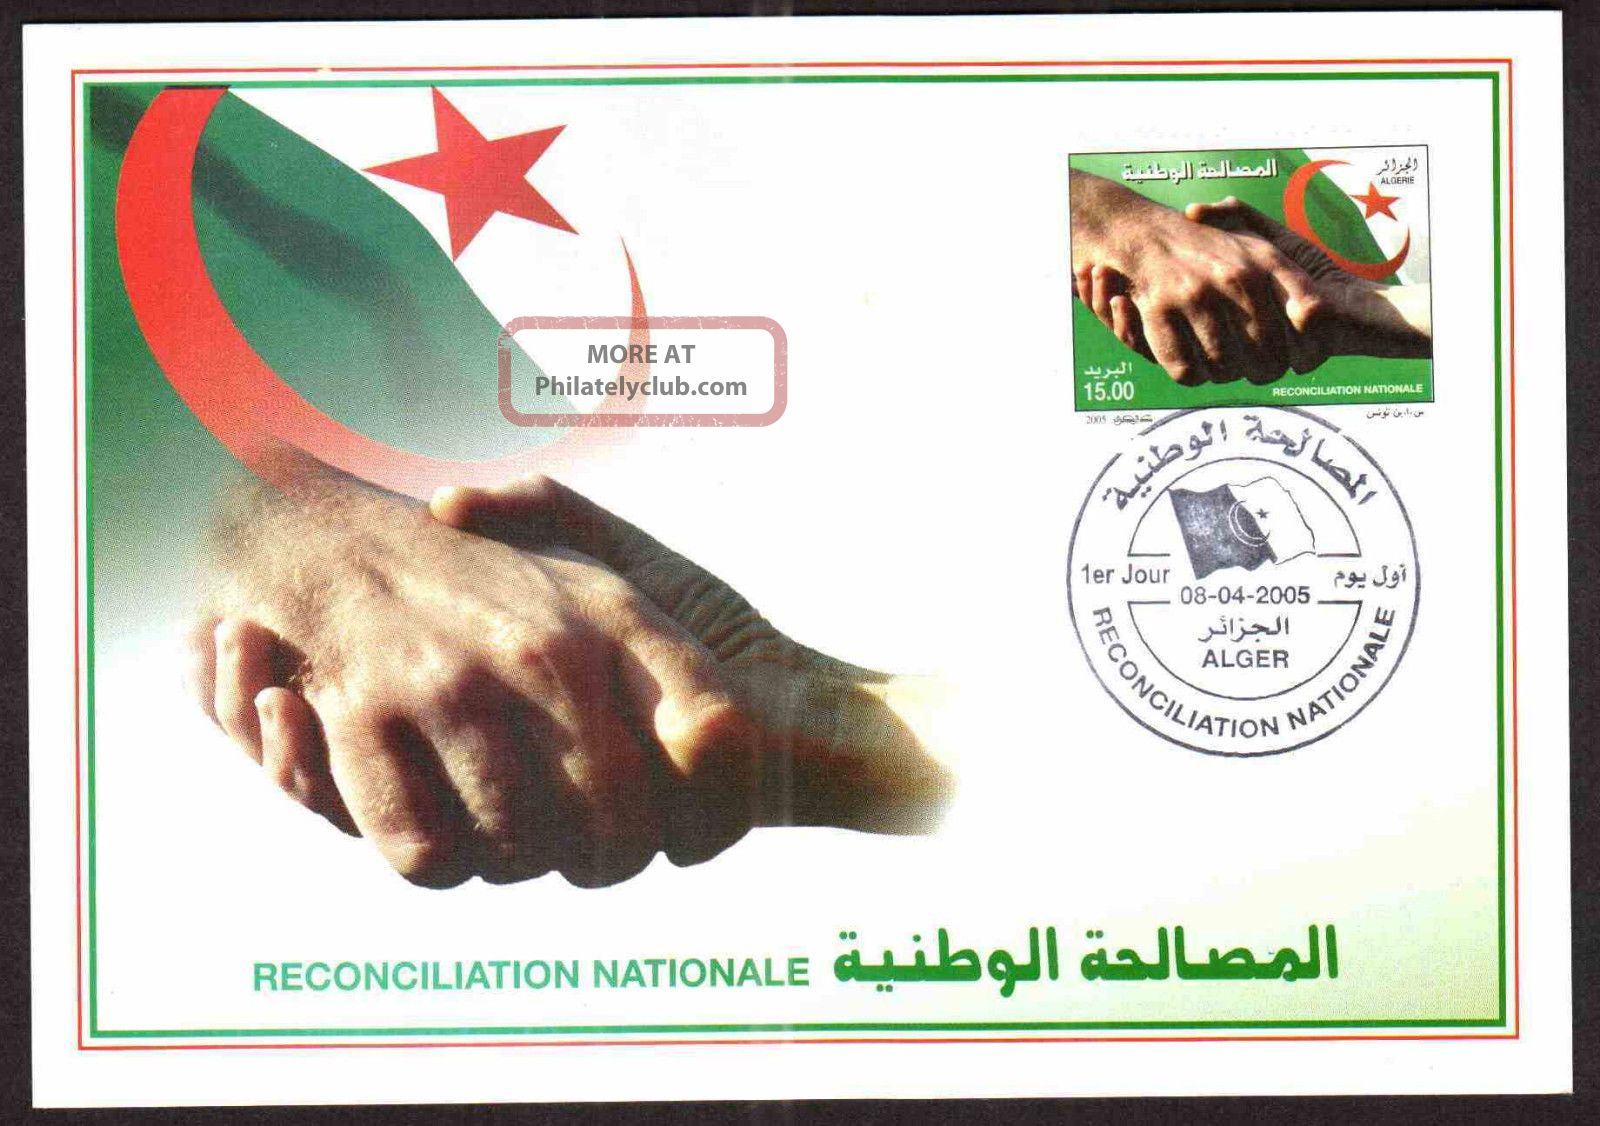 Algeria 2005 - National Reconciliation,  Scott 1332 - Fdc,  With Topical Cancel Topical Stamps photo